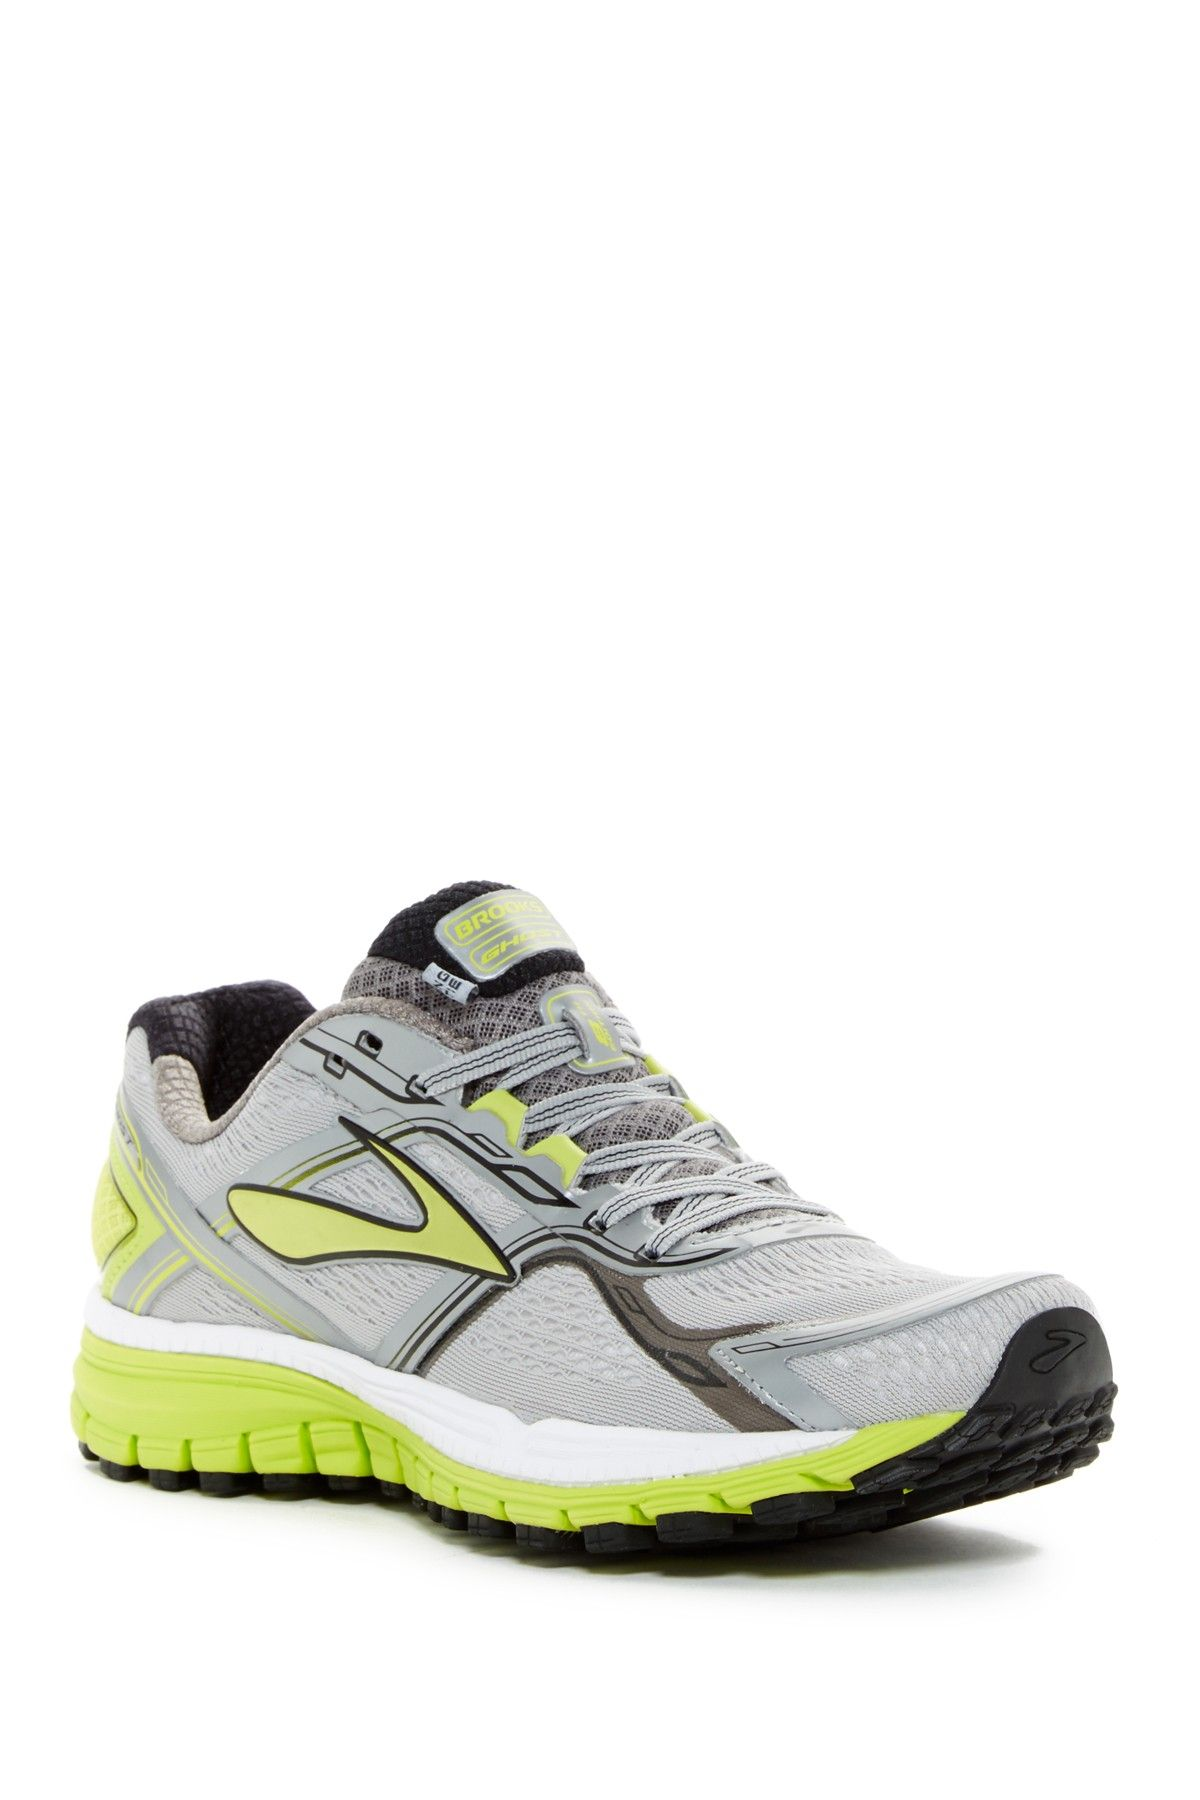 218ef9fdce9 Ghost 8 Running Sneaker - Multiple Width Available by Brooks on   nordstrom rack